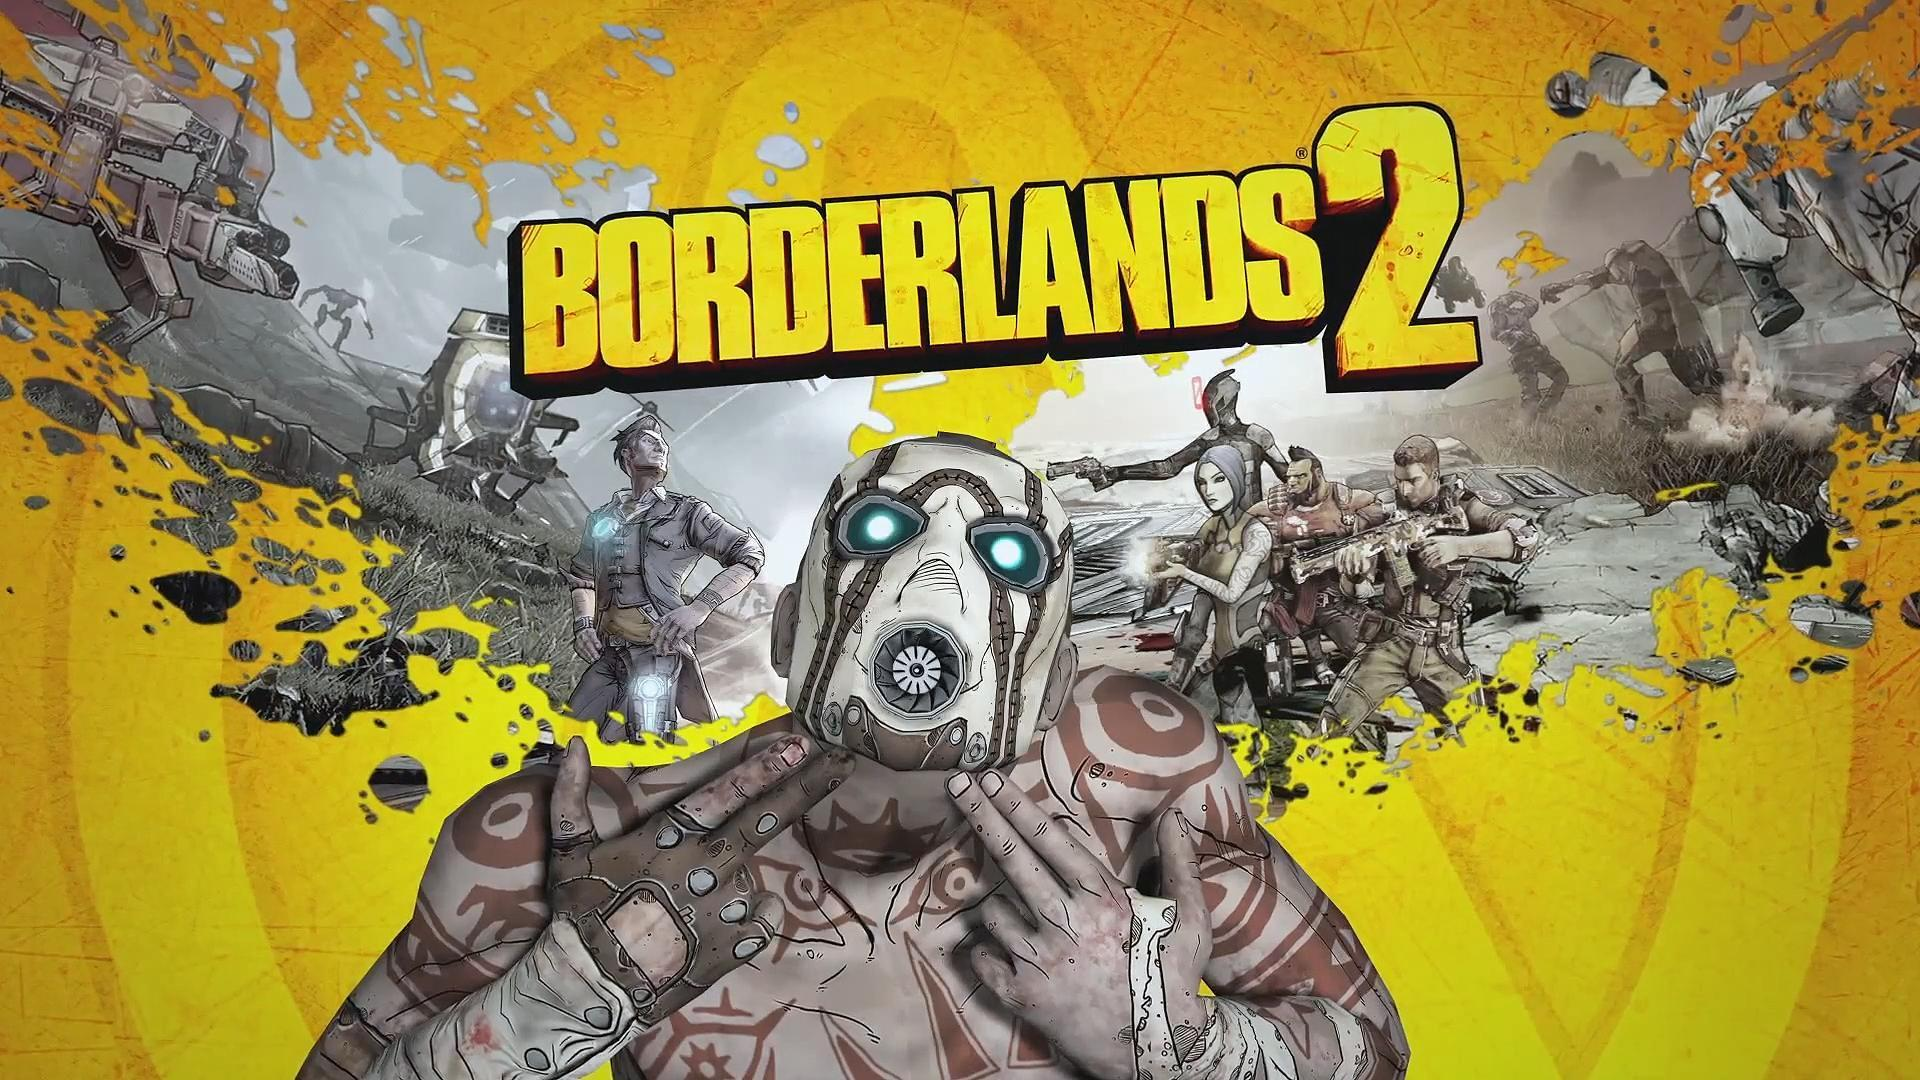 Borderlands 2 Wallpapers 1920x1080 - Wallpaper Cave Borderlands